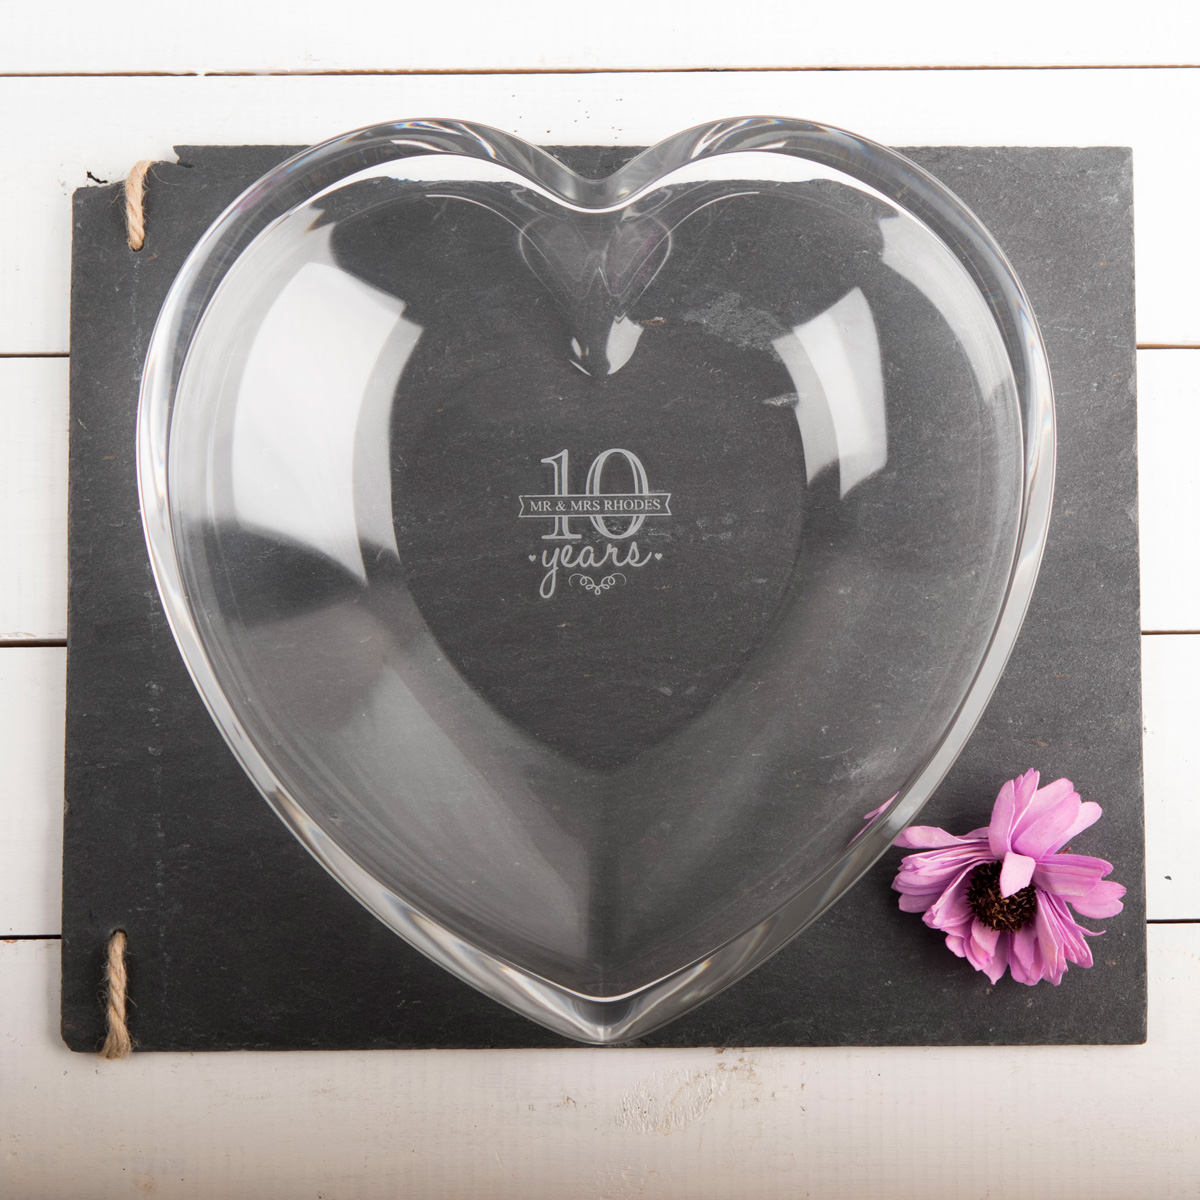 Personalised Heart Glass Bowl  10 Years